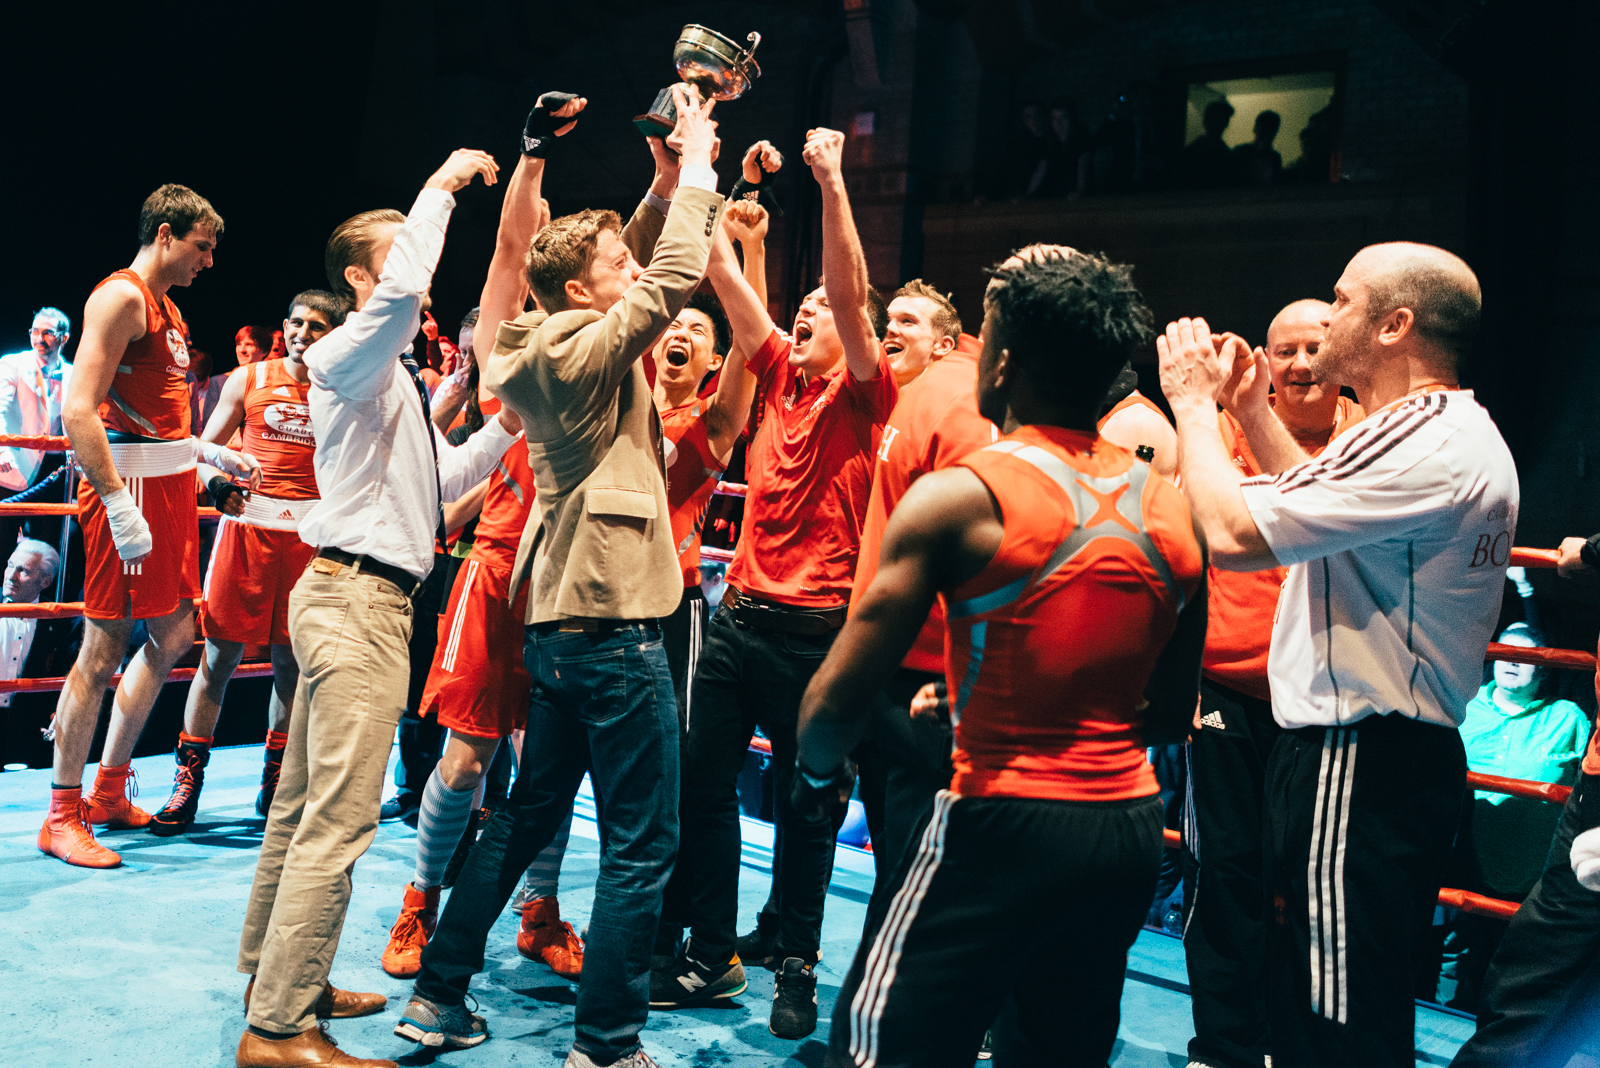 CUABC Team Celebrates In The Ring With Their Coaches [Photo Credit: John Fahy]